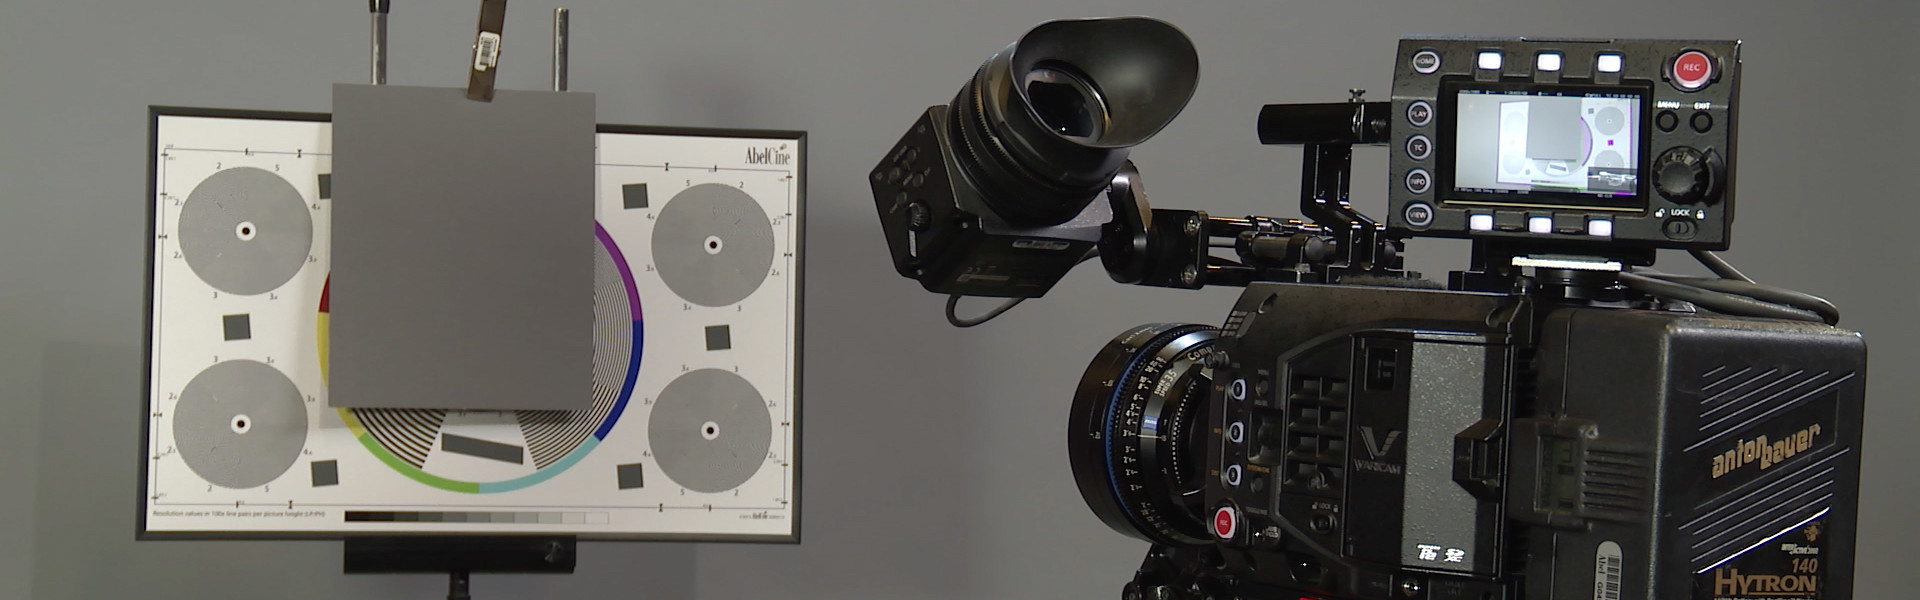 Header image for article At the Bench: Panasonic VariCam Exposure Tools